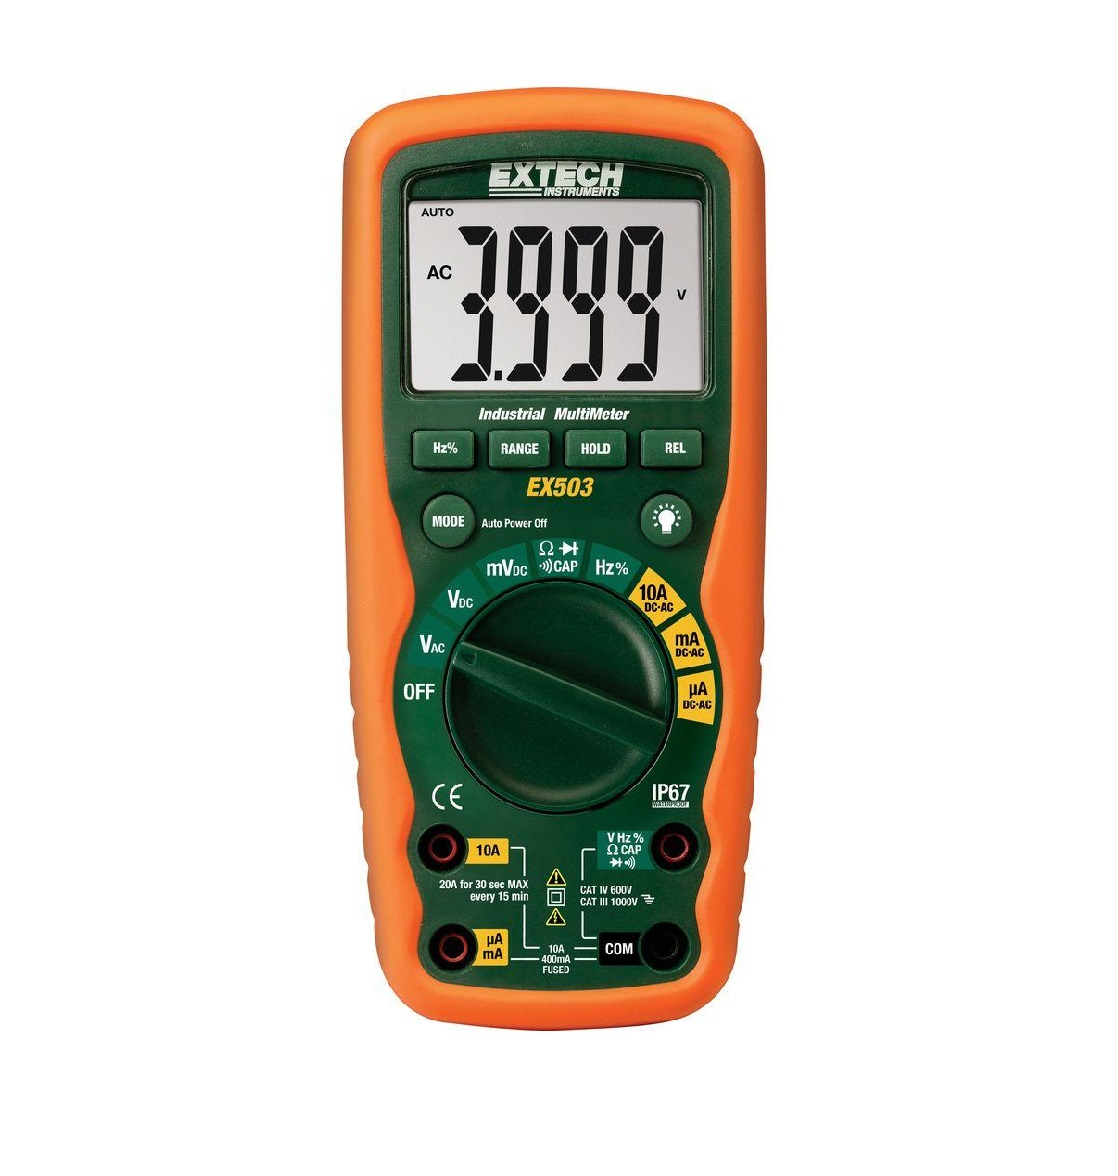 EXTECH EX503 - 10 Function Heavy Duty Industrial MultiMeter